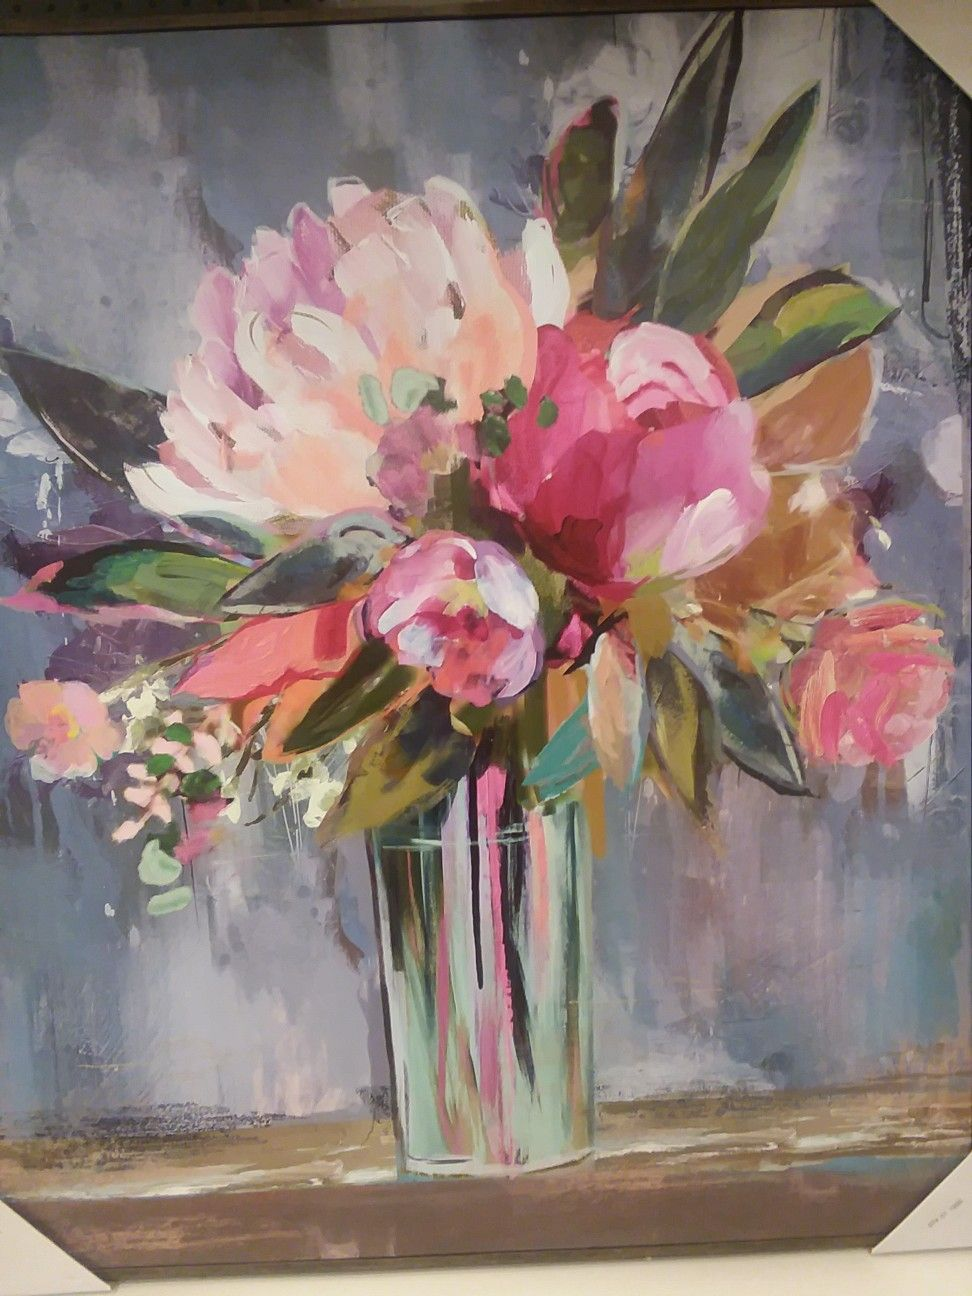 d1c6e9518 A beautiful painting of some flowers in a vase. | Drawings in 2019 ...